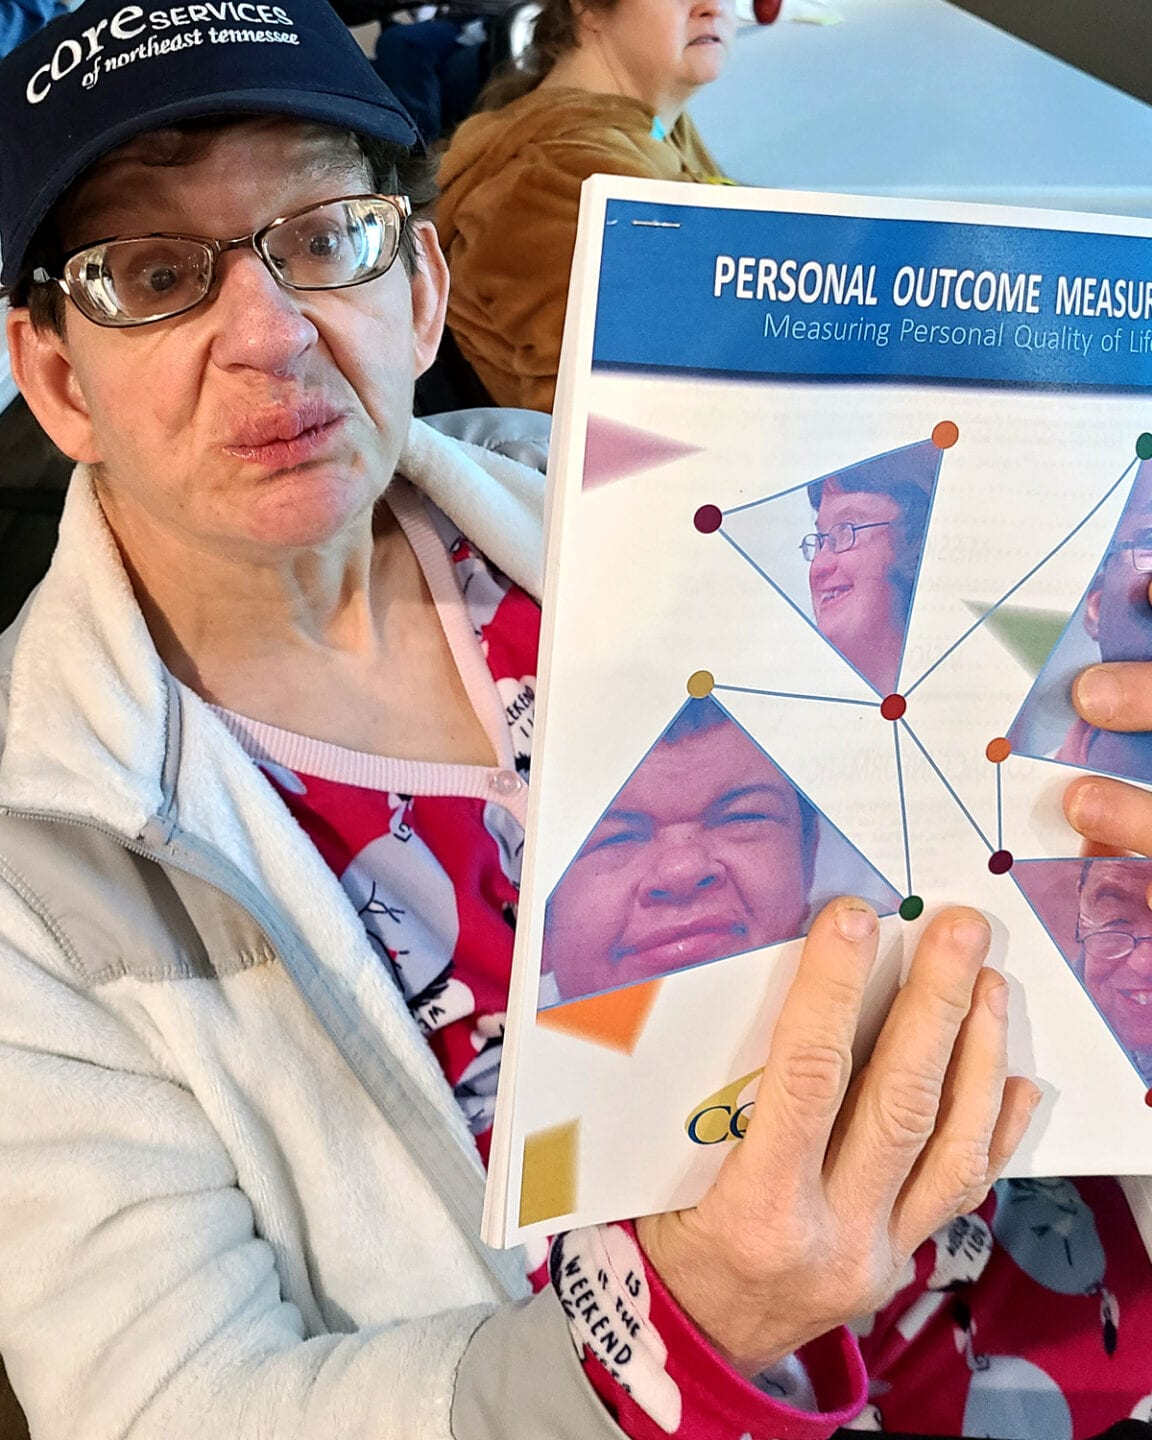 Person receiving services through Core Services holds up Personal Outcome Measures® Manual